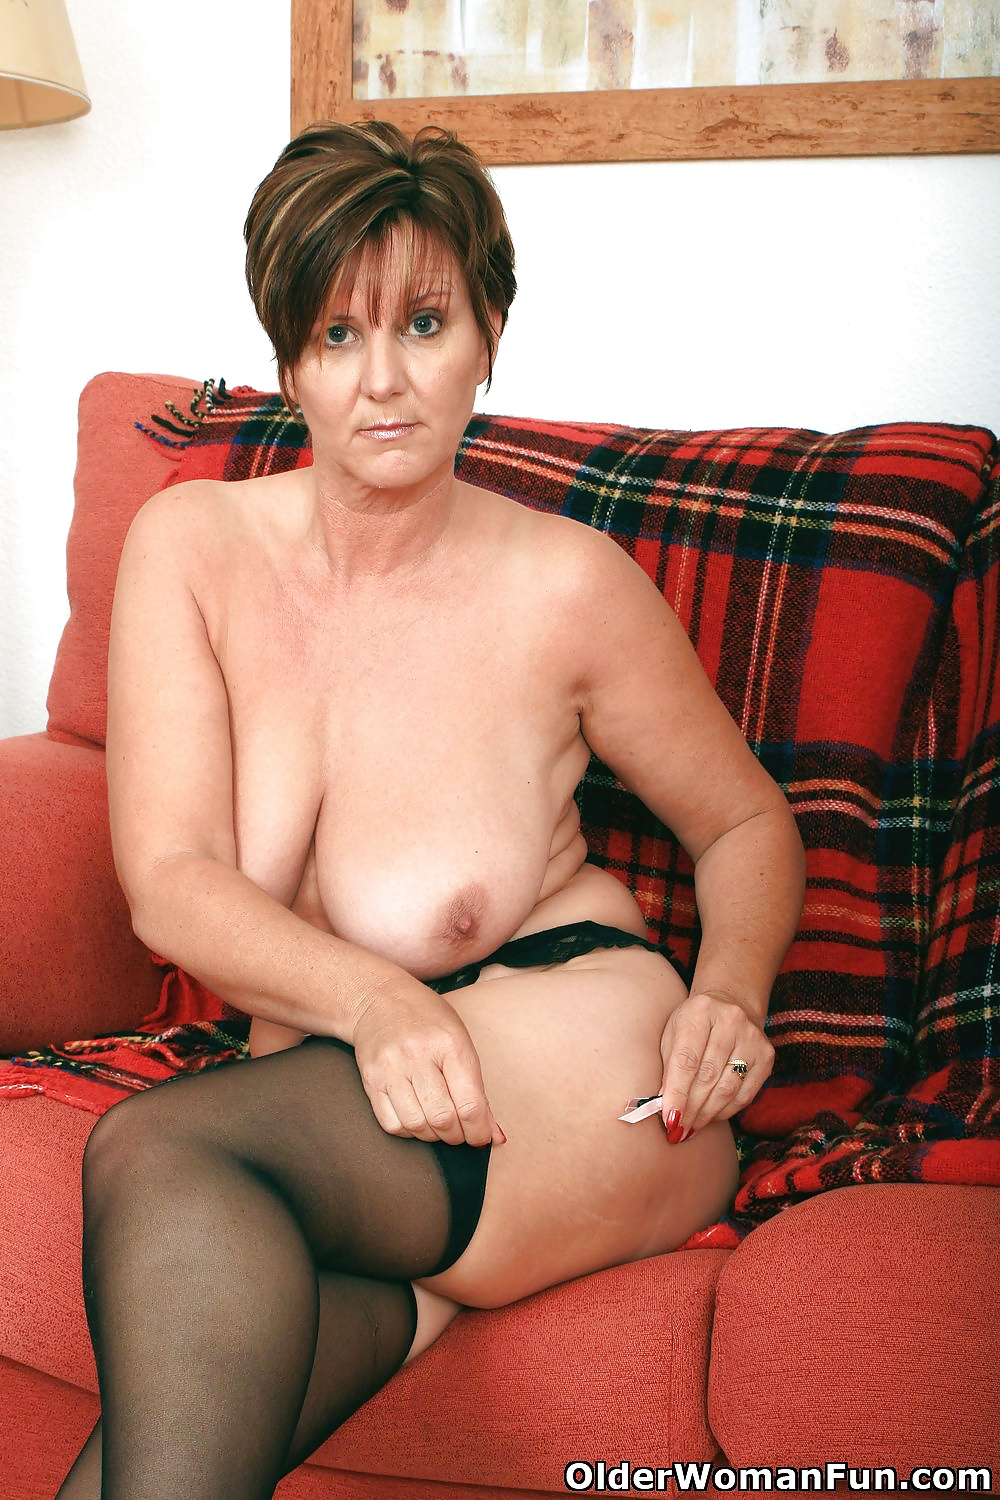 Milf joy hot nude apologise, but